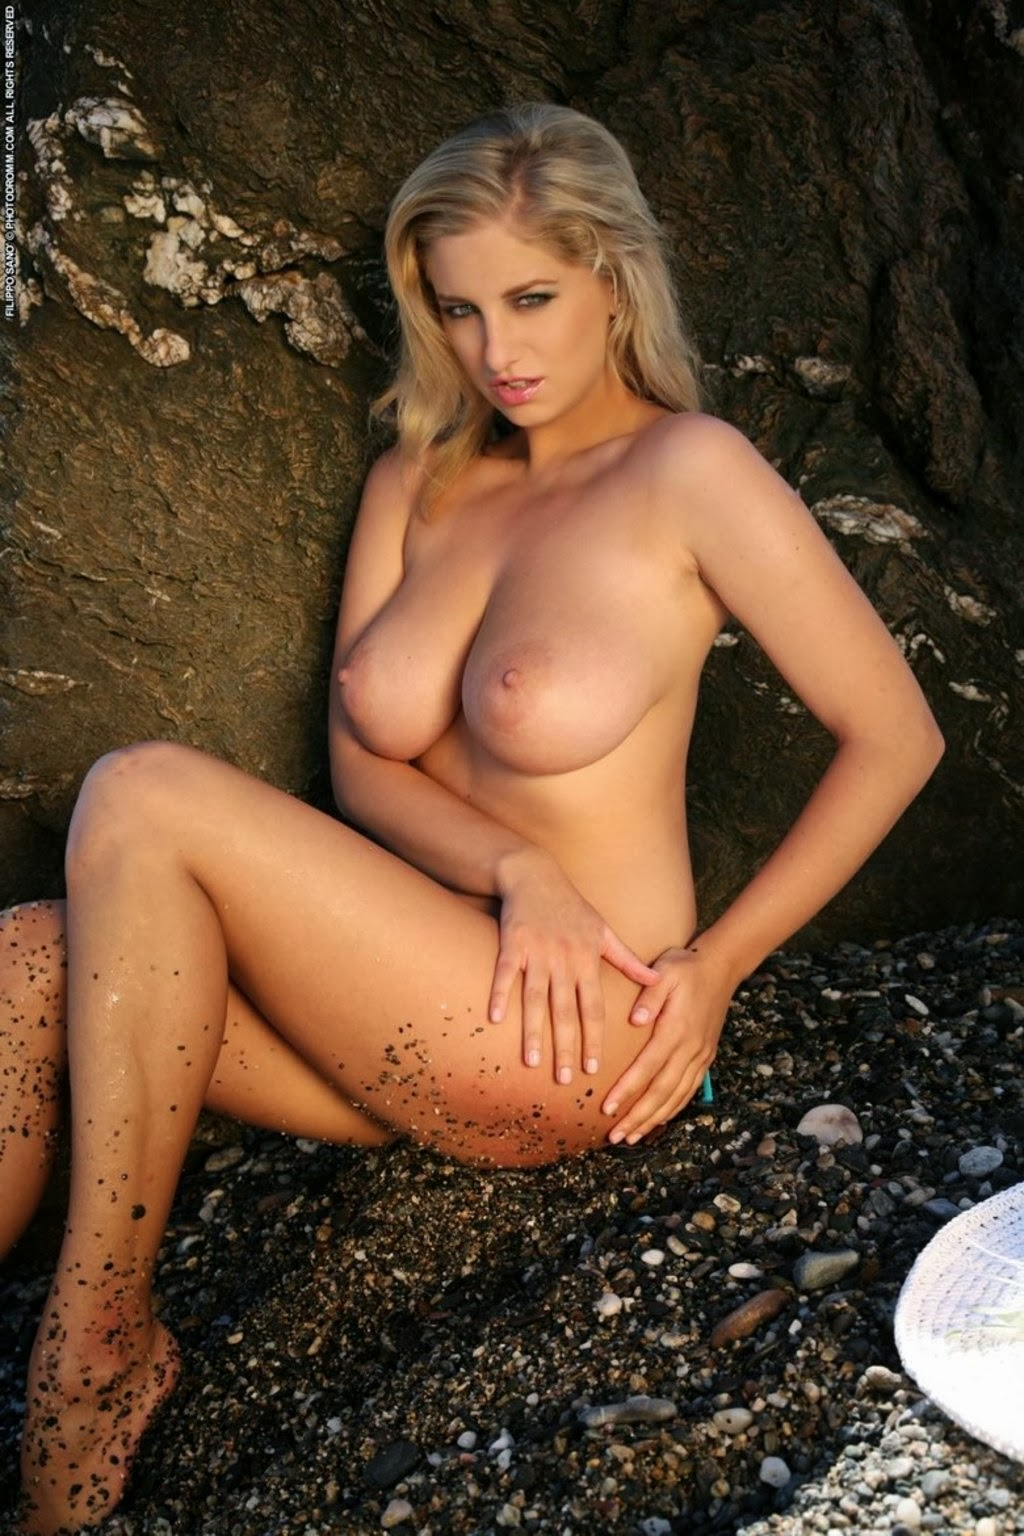 Charming Blonde Demonstrated Her Incredibly Hot Body